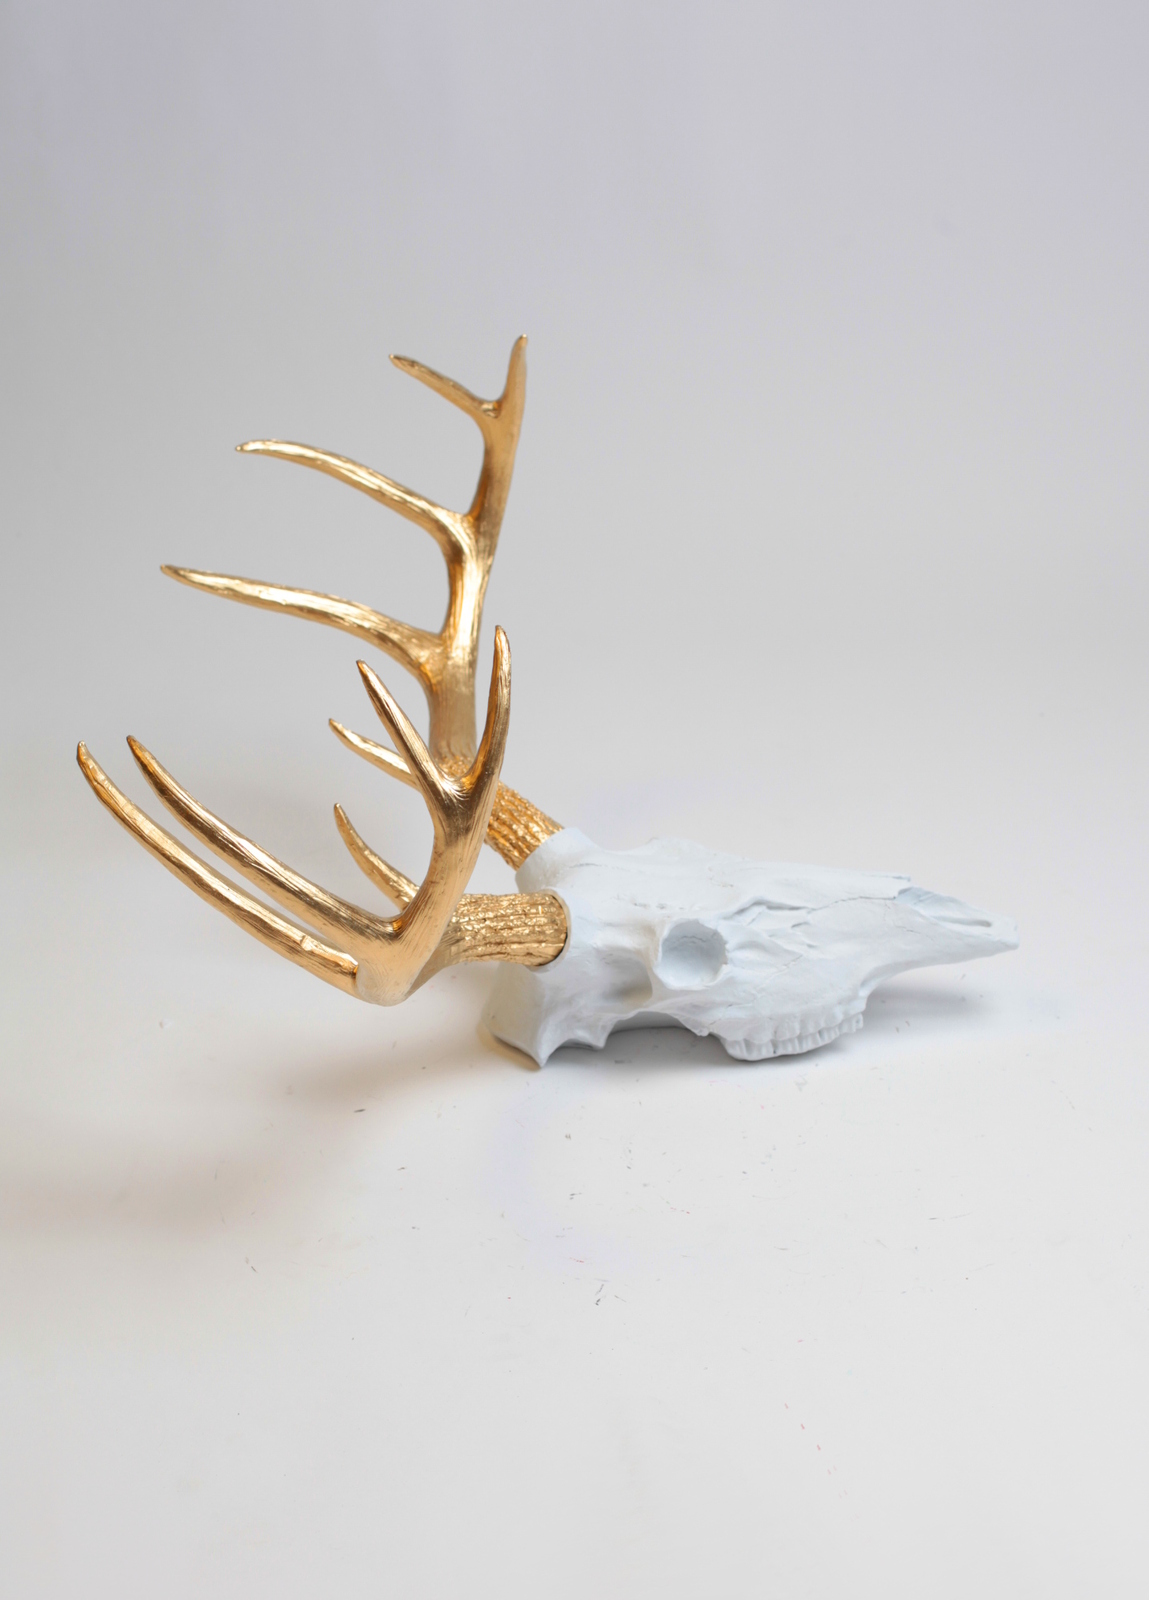 Fake Deer Skull And Antlers White Resin Deer Skull W Gold Antlers Faux Stag Decor